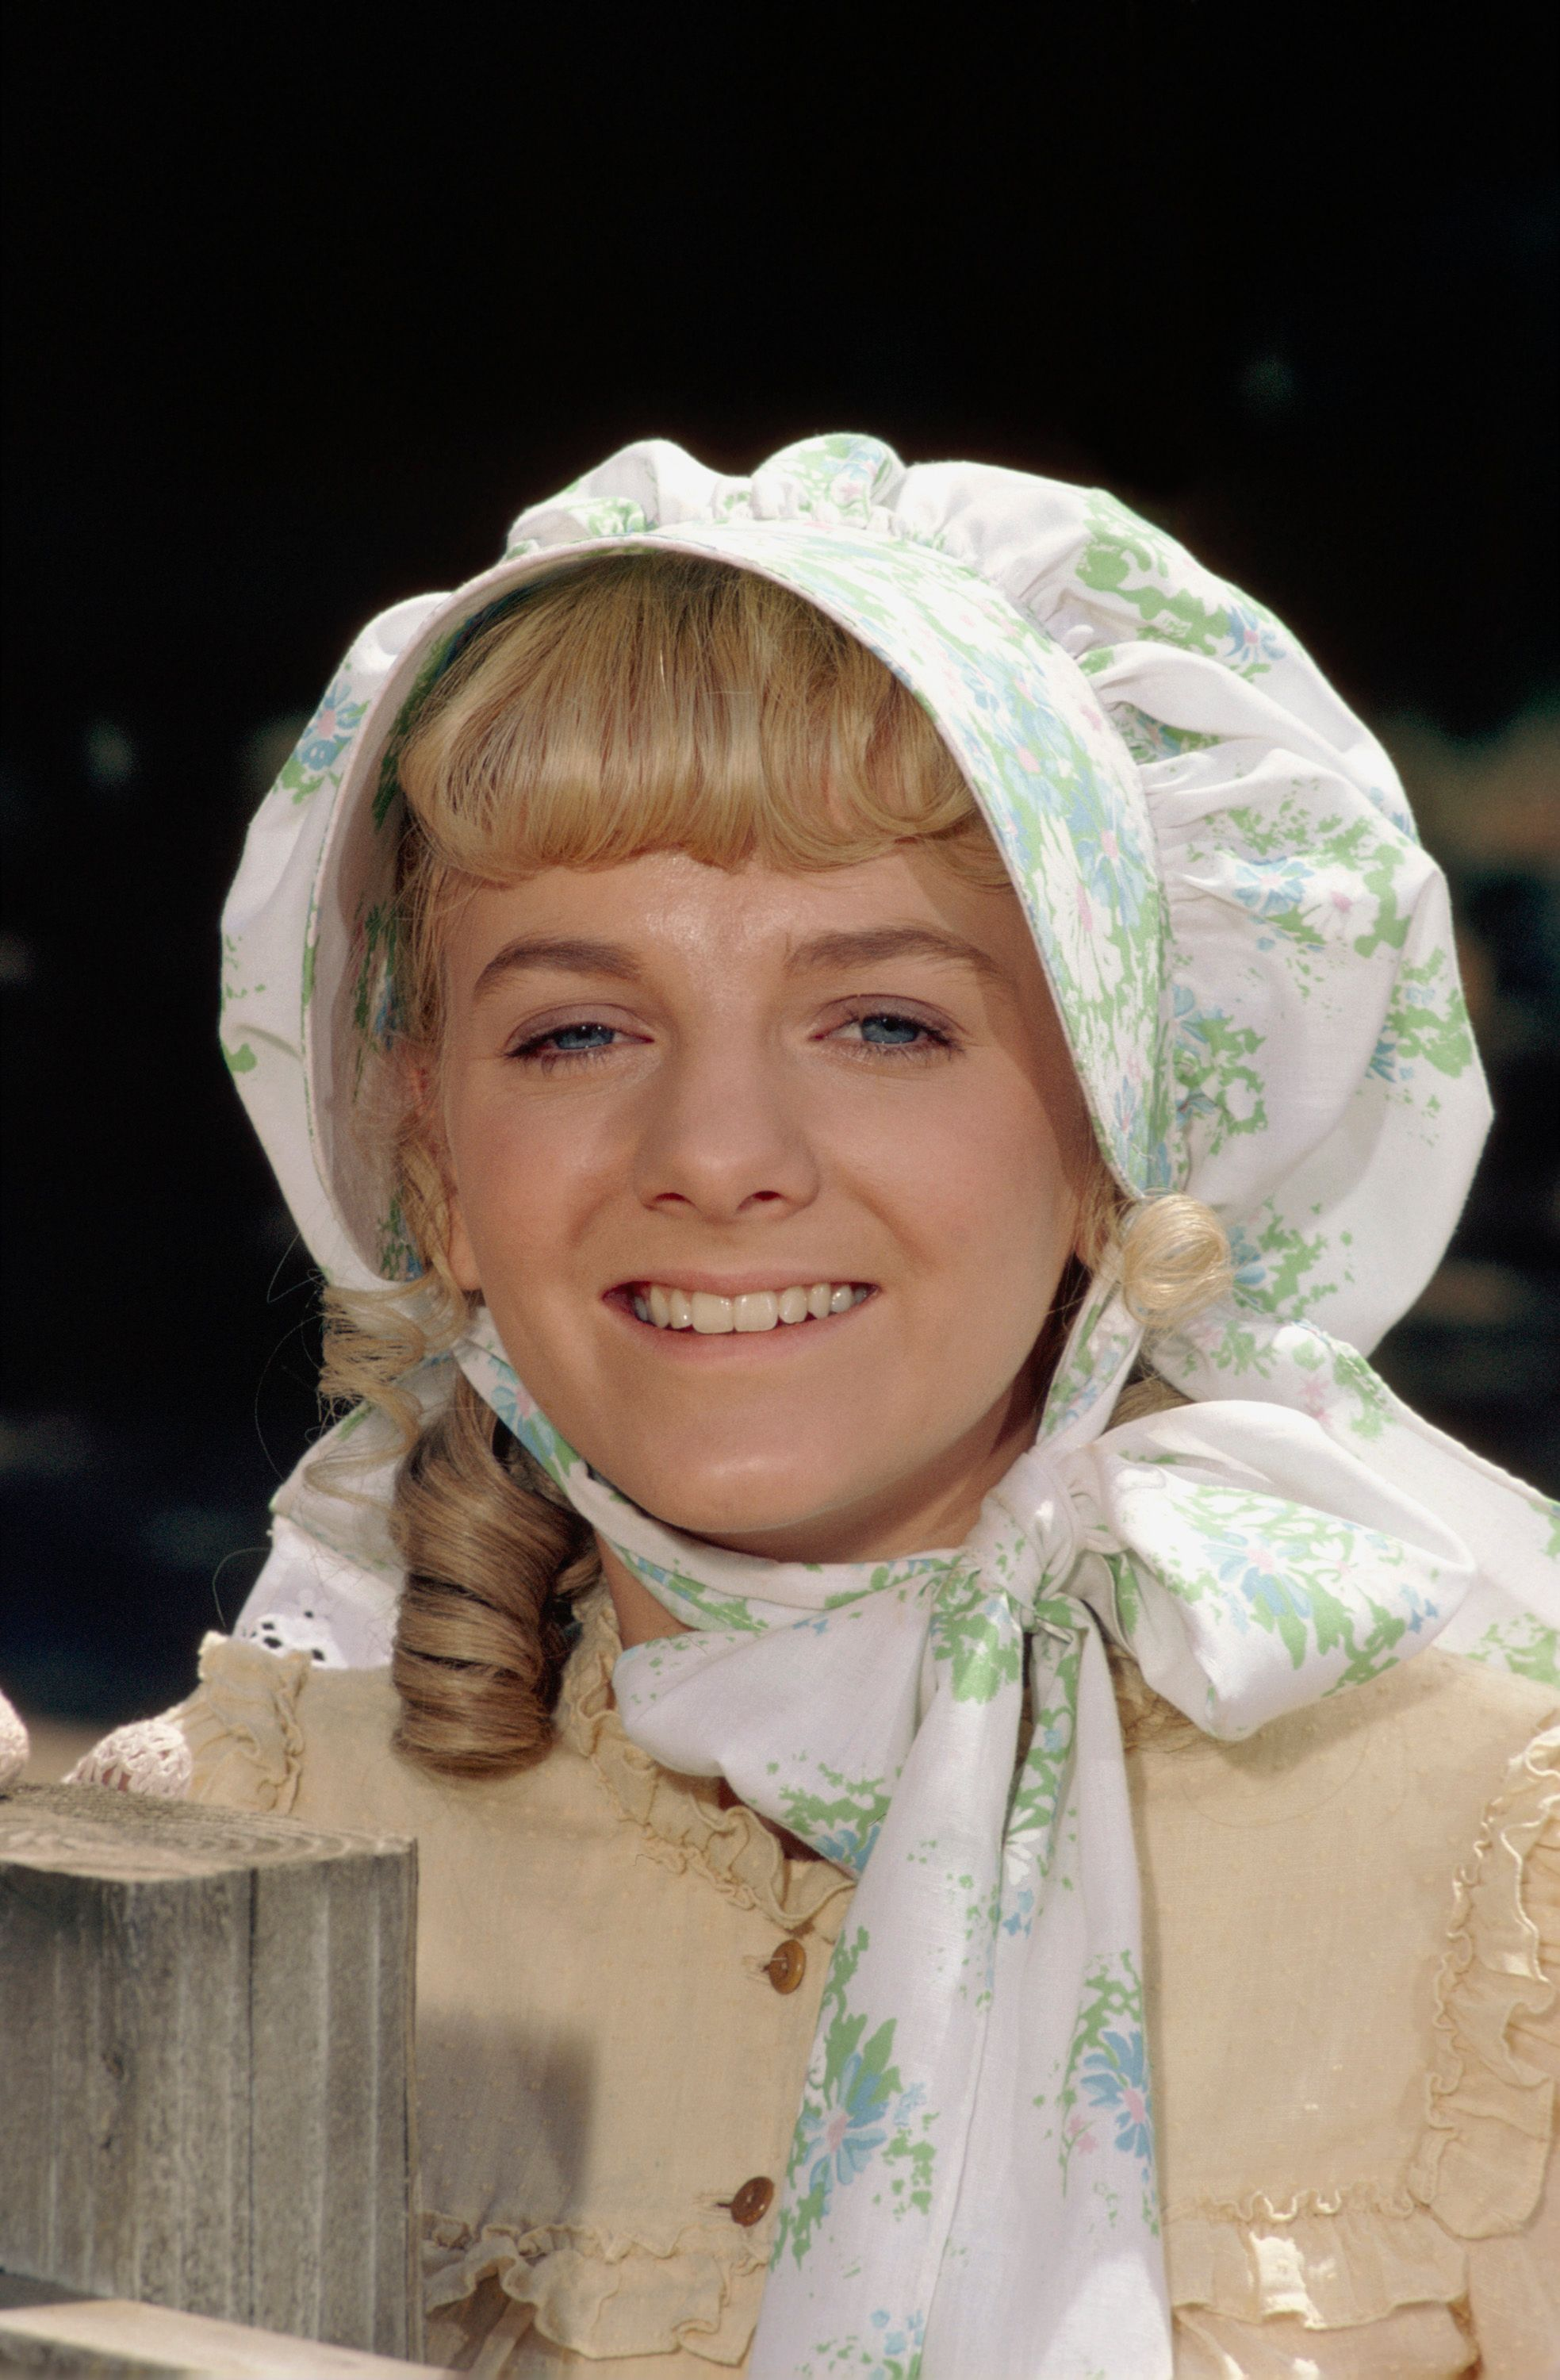 PETITE MAISON DE LA PRAIRIE -- Saison 6 -- En photo : Alison Arngrim dans le rôle de Nellie Oleson. | Photo : Getty Images